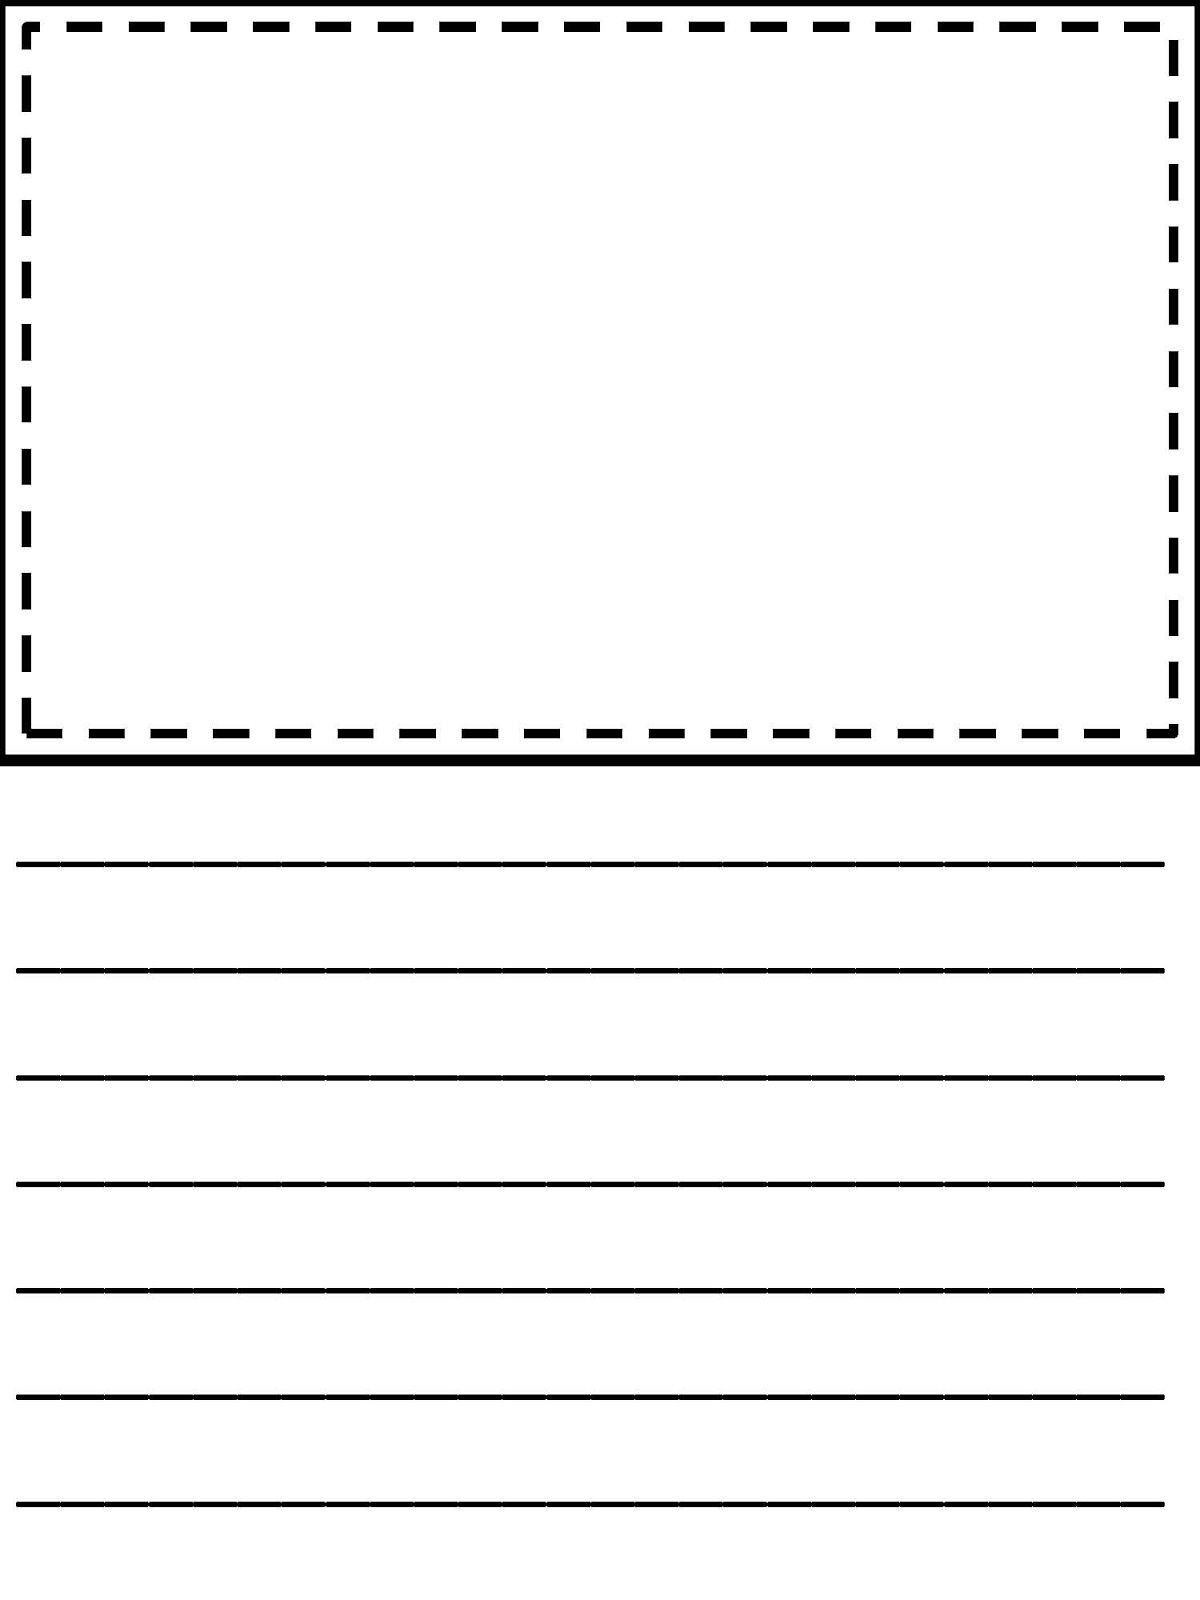 Pete The Cat Lined Paper 1 200 1 600 Pixels